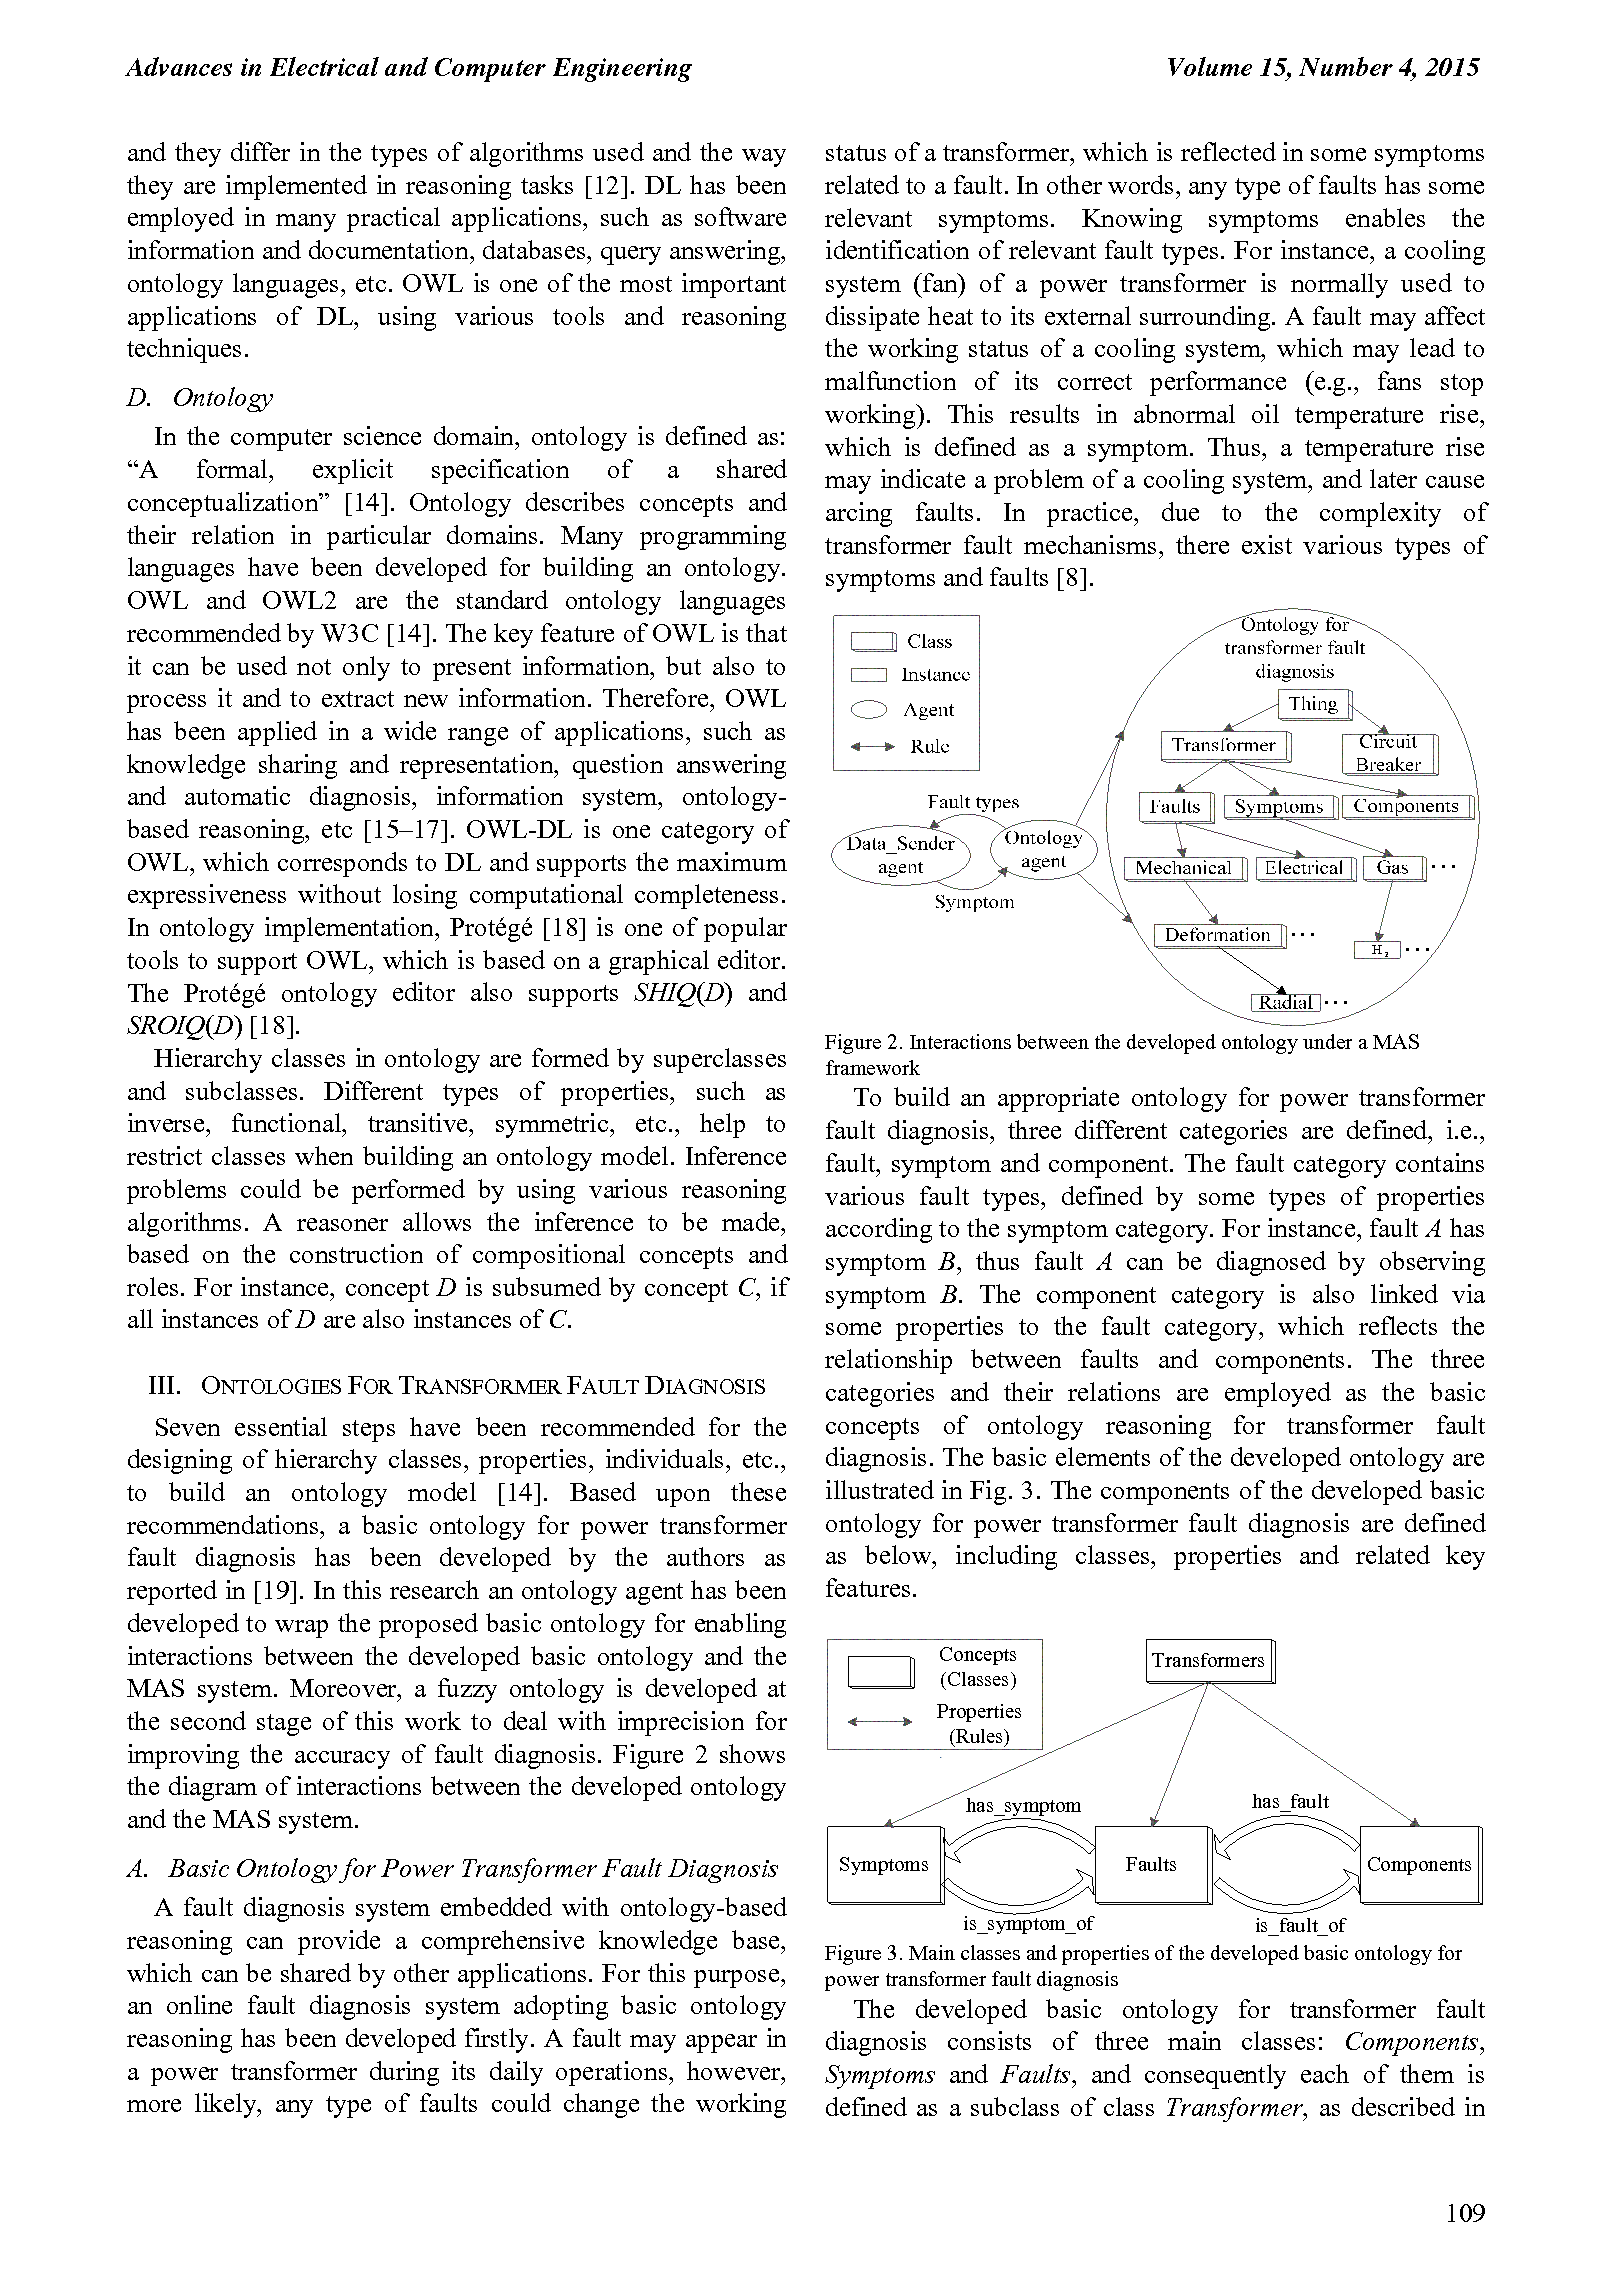 PDF Quickview for paper with DOI:10.4316/AECE.2015.04015